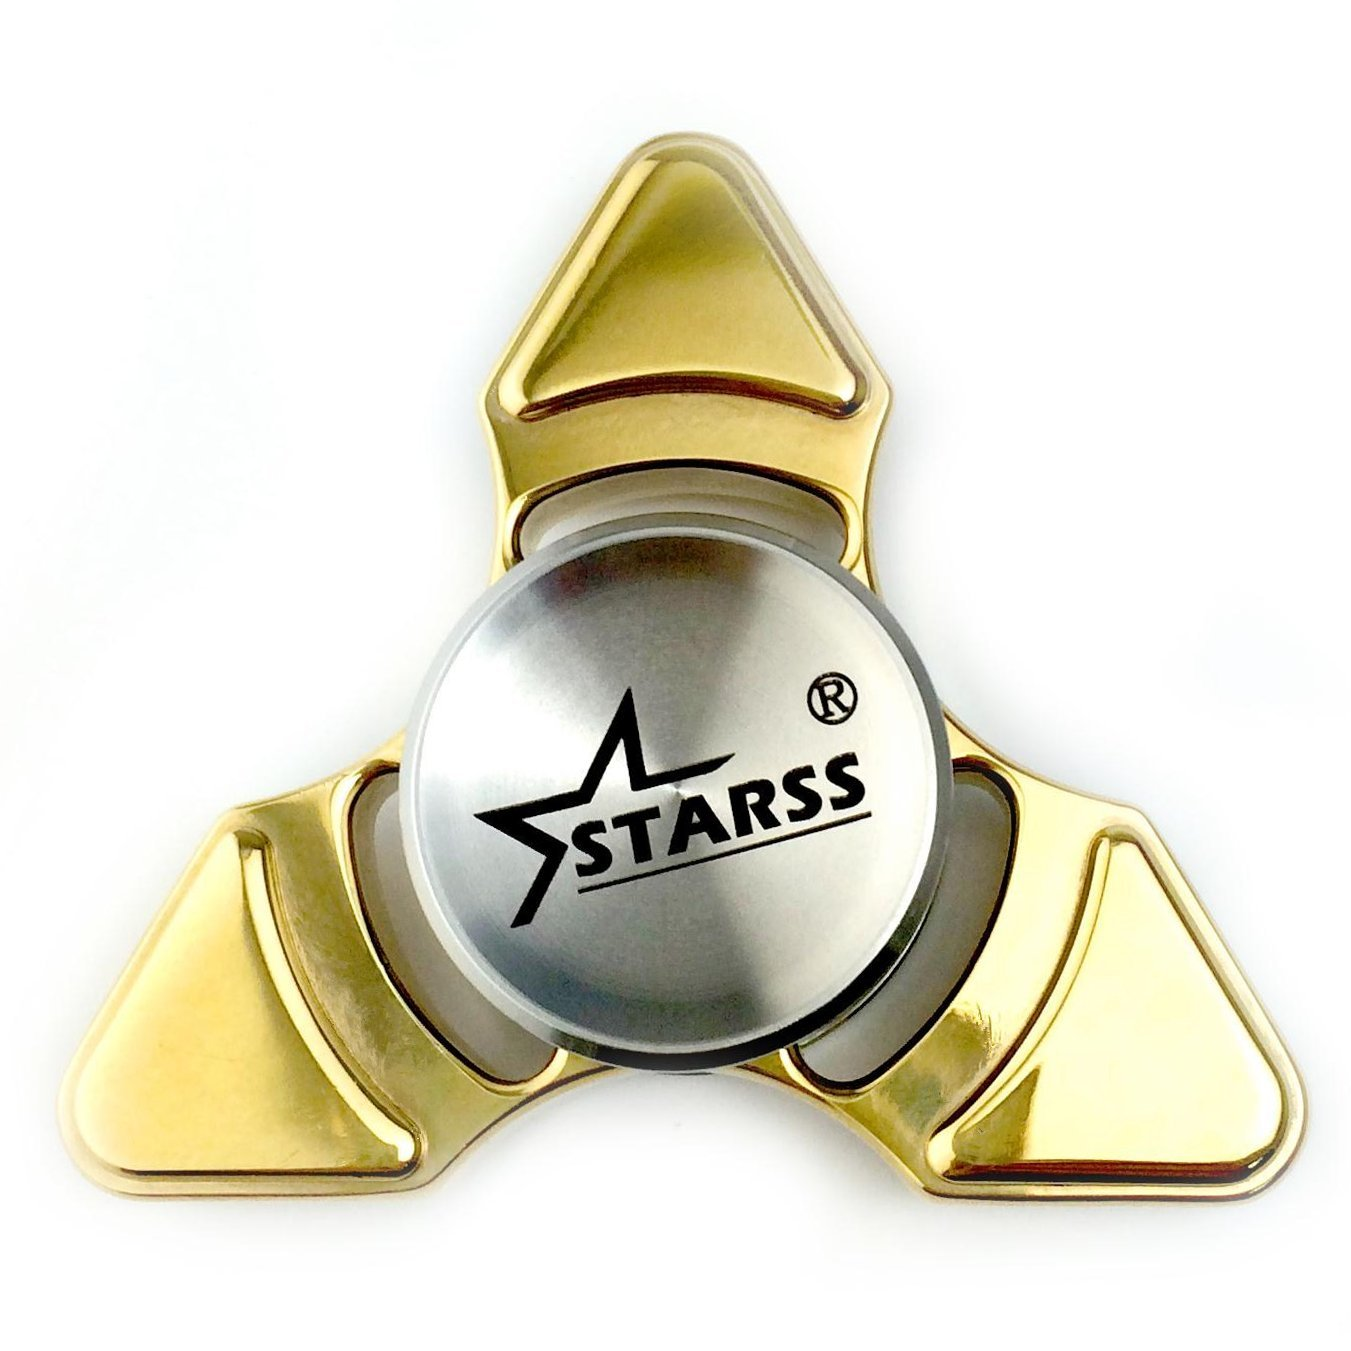 2017 Willtopia Best Fidget News And Review Minimalis Tri Bar Handspinner Spinner I Have Another Teardrop From Starss This One Is A Smaller It Has Signature Great Construction Feels Good When